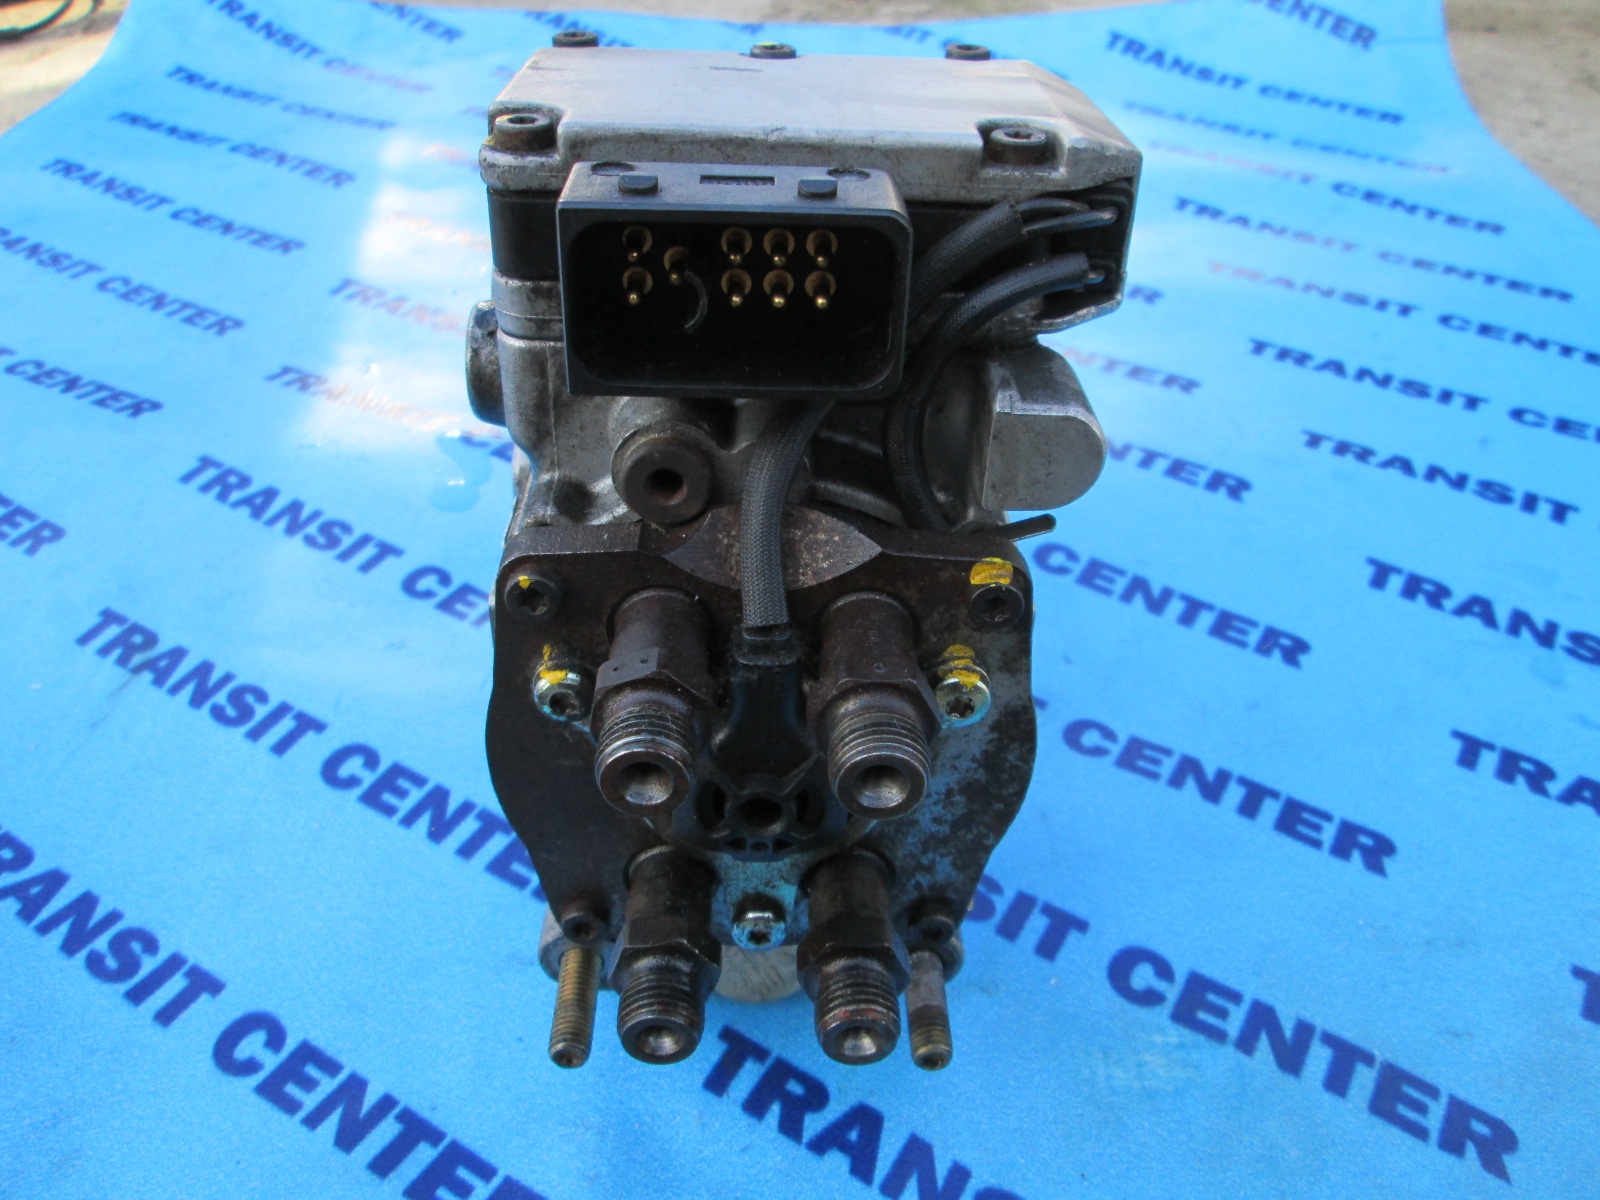 2013 Ford Transit Connect >> Pompe d'injection vp44 0470504018 Ford Transit 2000-2006